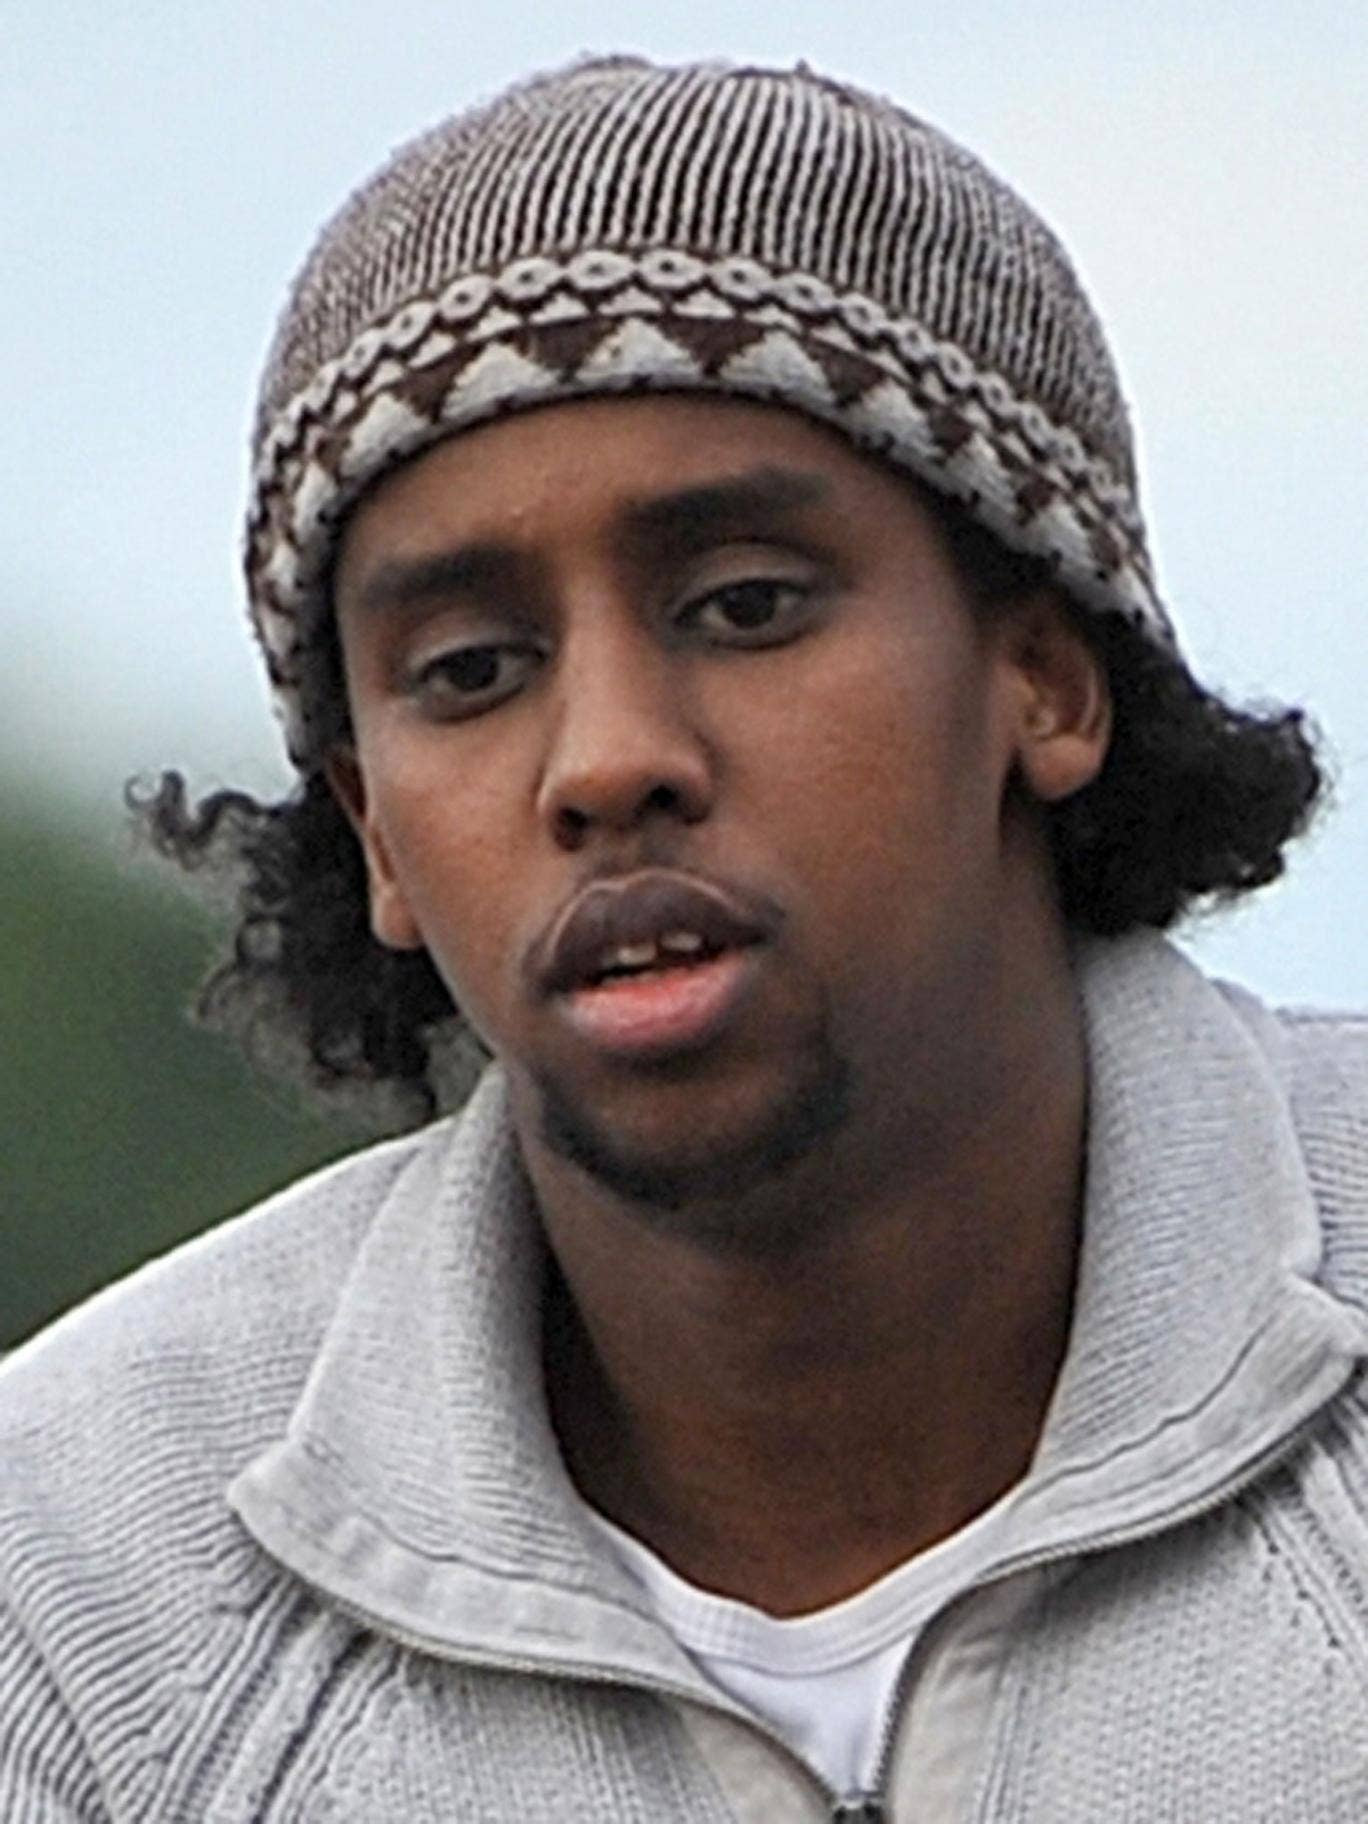 Terror suspect Mohammed Ahmed Mohamed who is being hunted by counter-terrorism officers from Scotland - Mohammed-Ahmed-Mohamed-PA